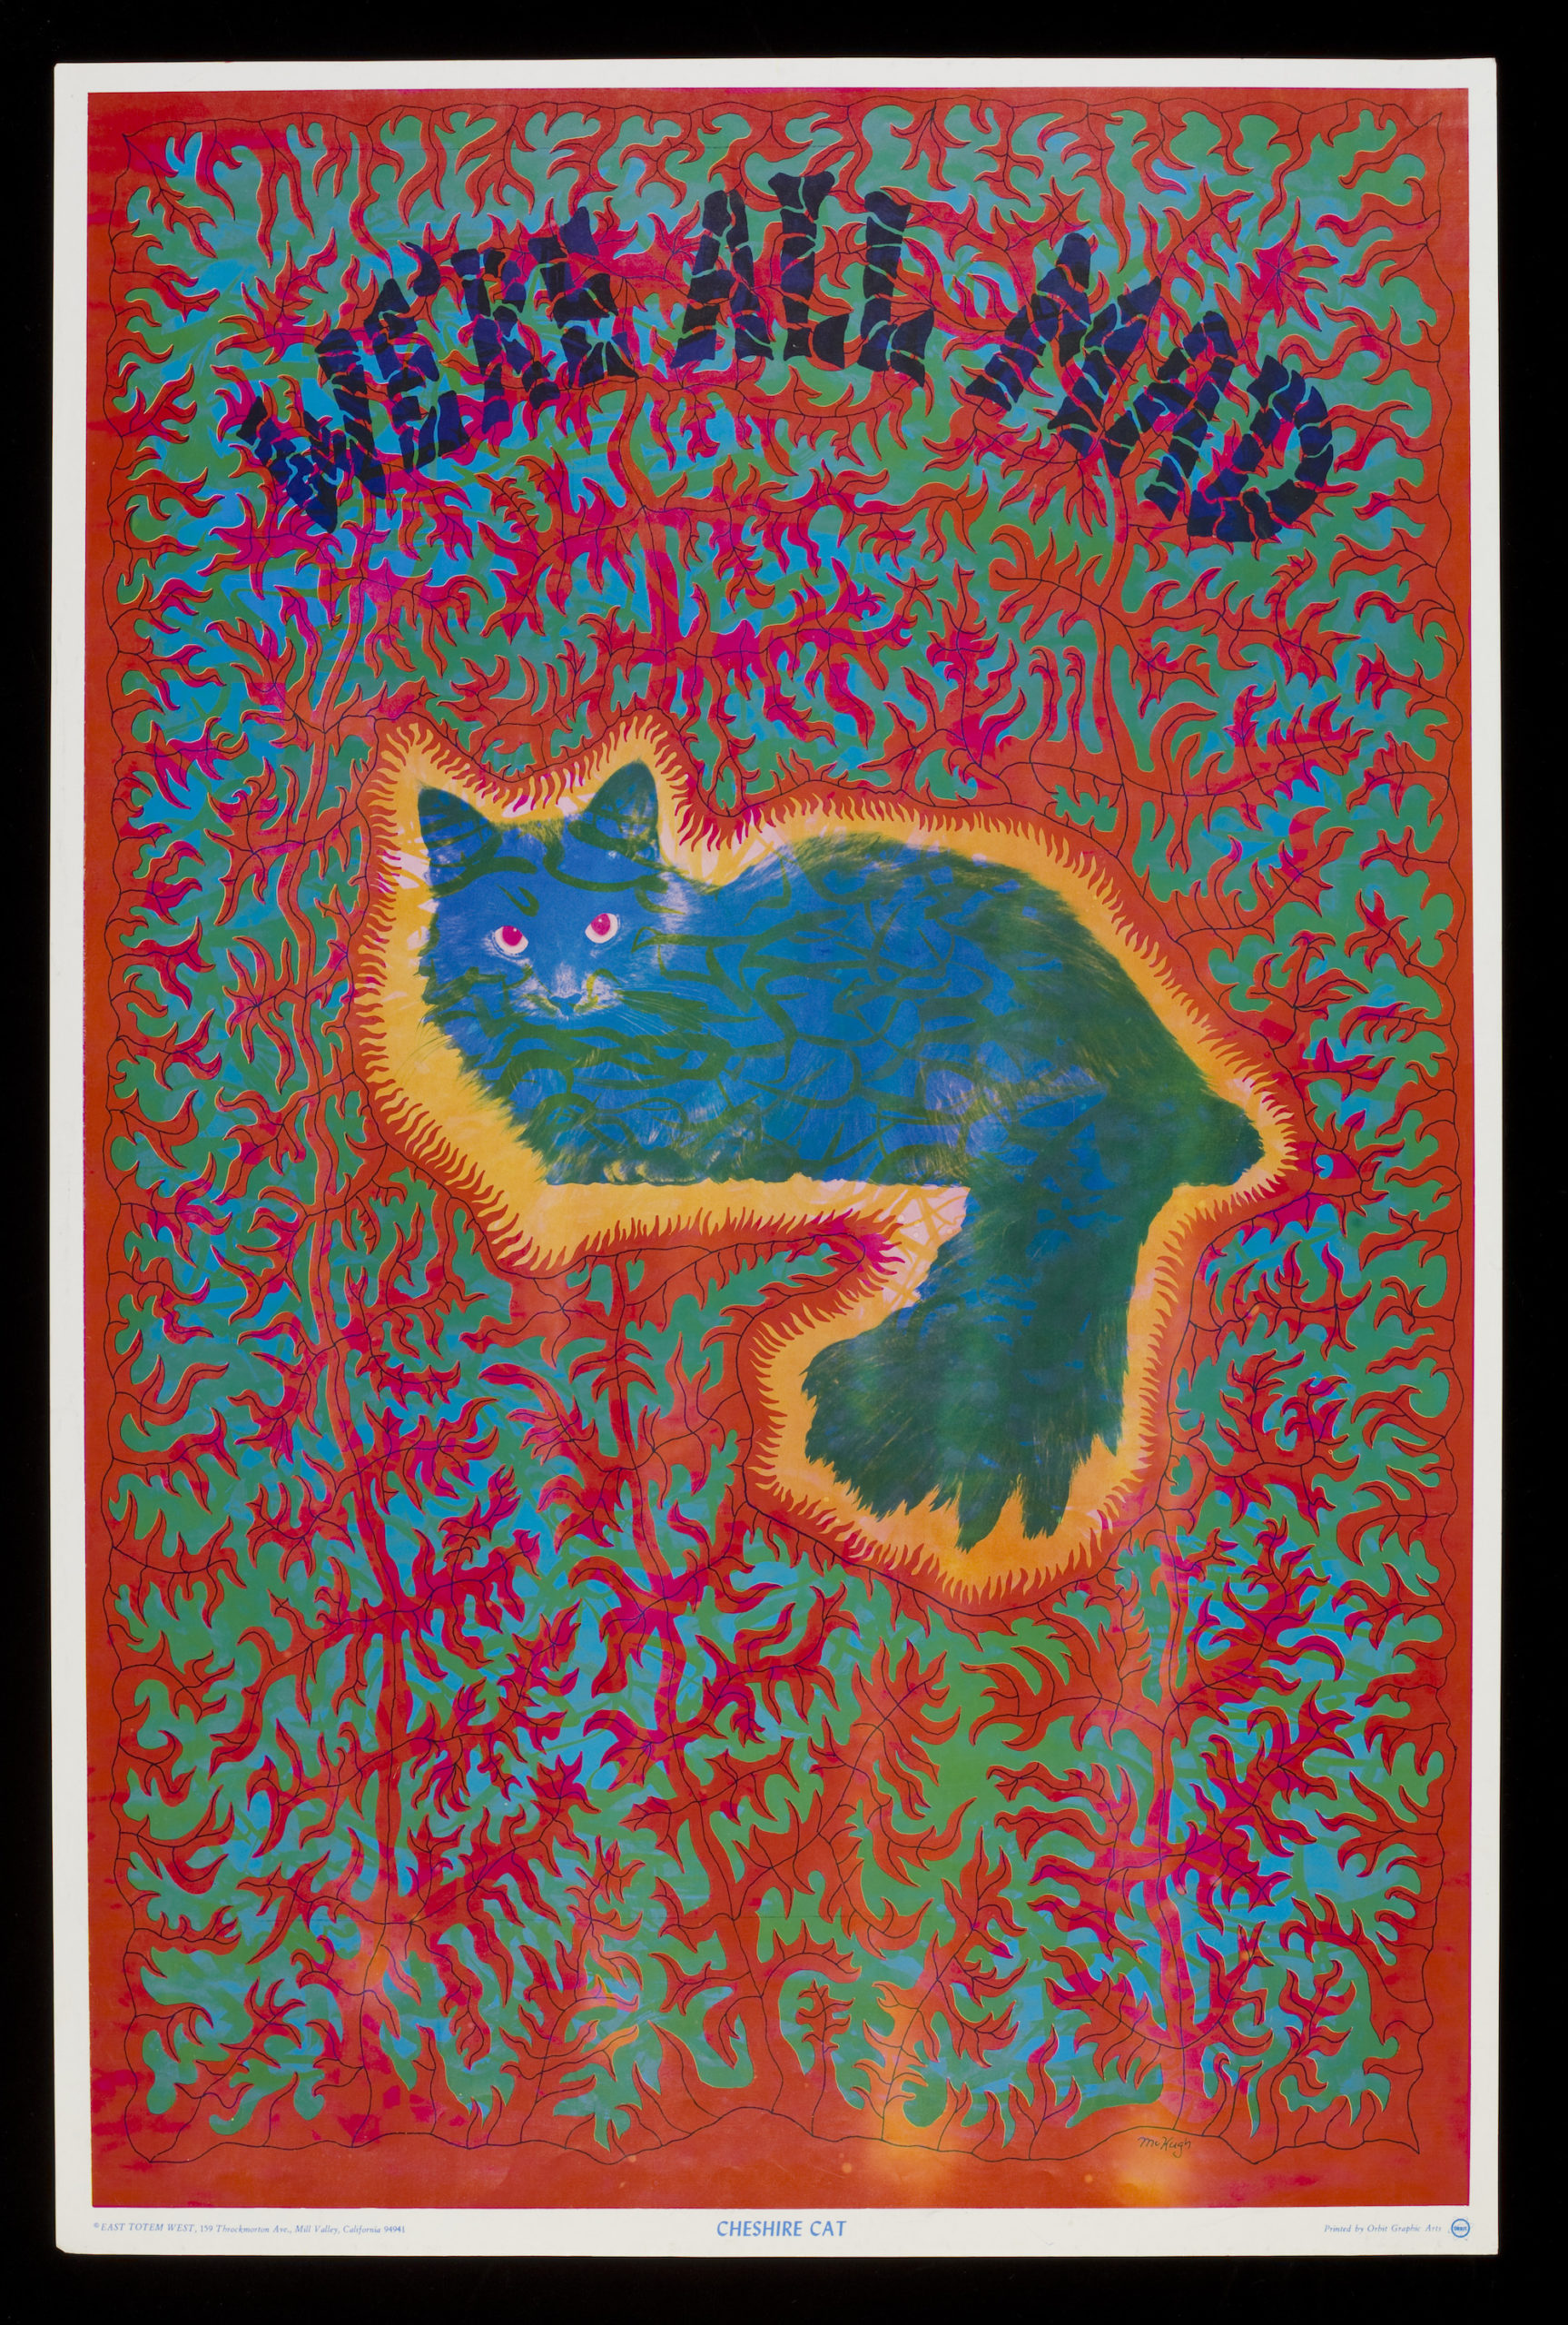 Cheshire cat, psychedelic poster by Joseph McHugh, published by East Totem West. USA, 1967